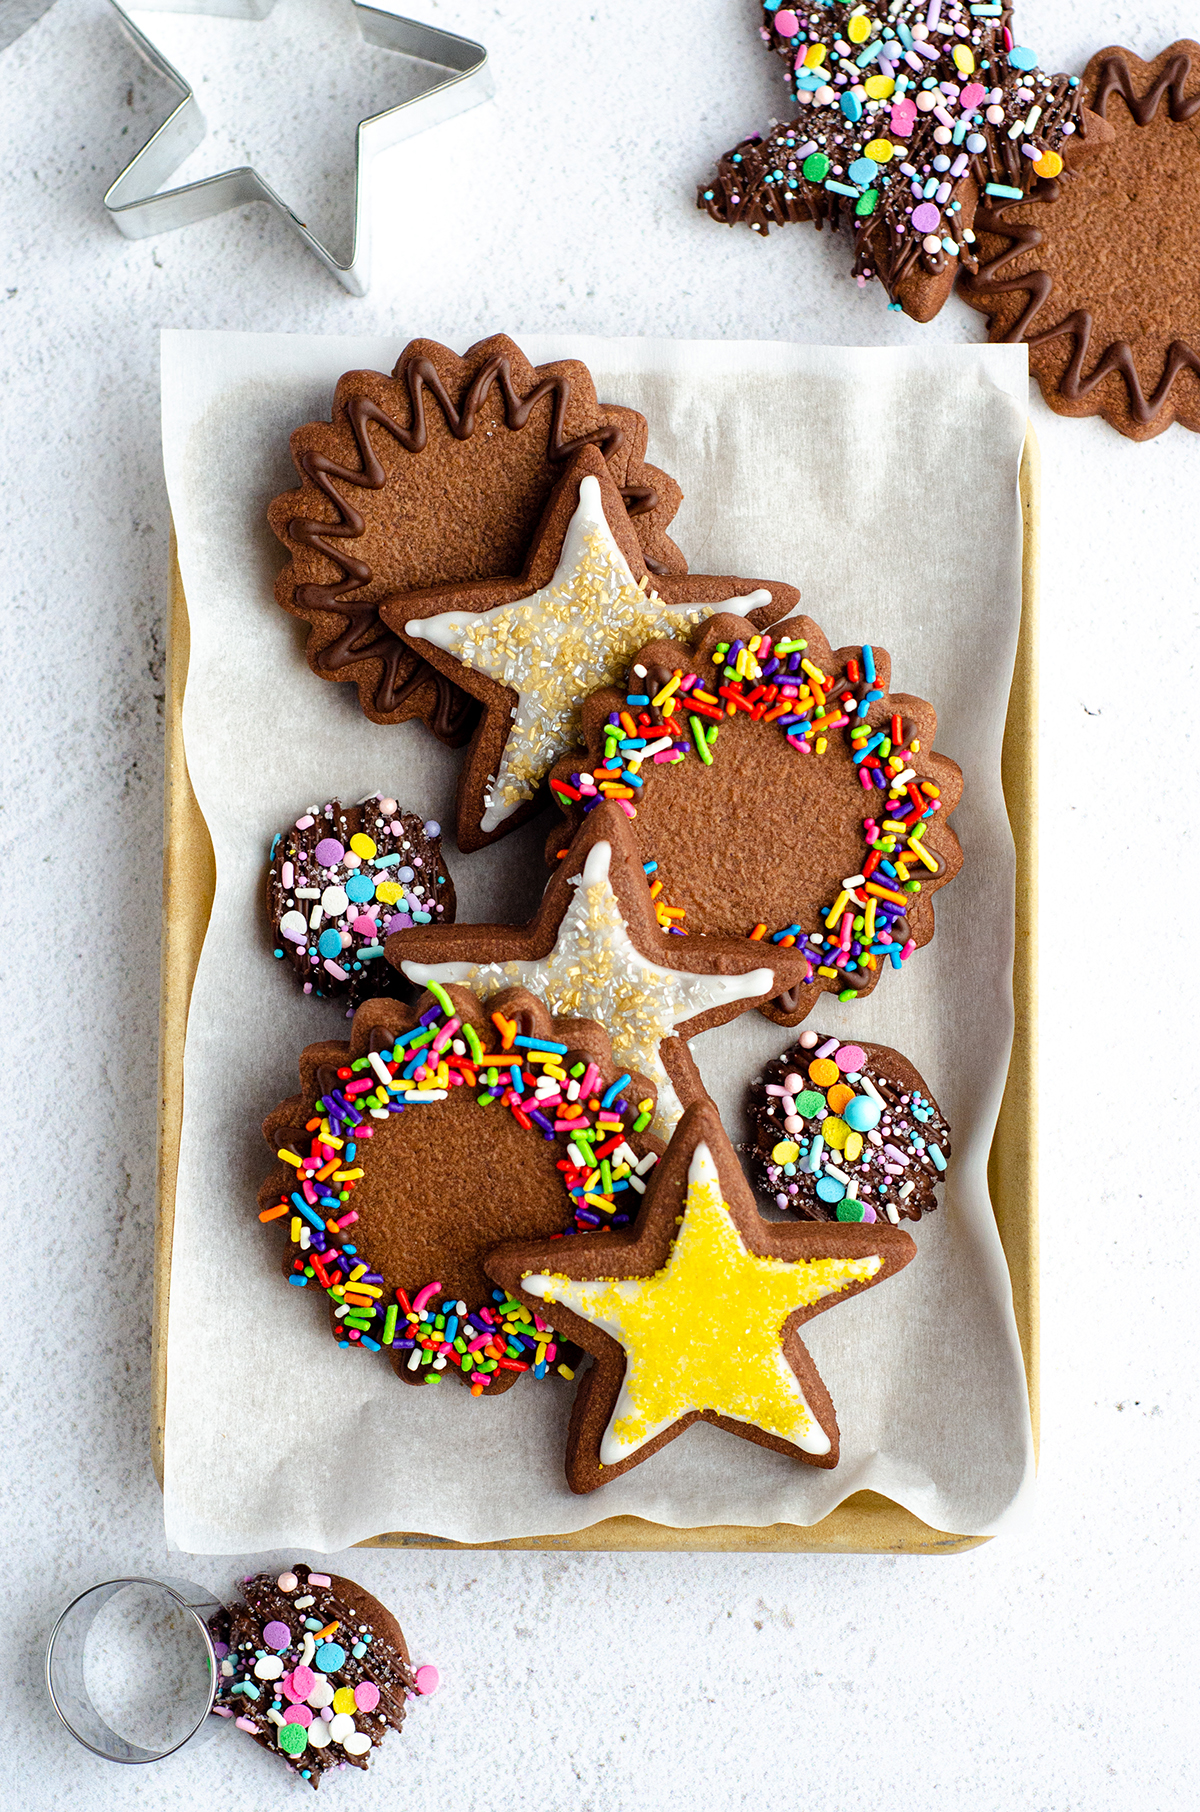 aerial photo of plate of chocolate cut-out sugar cookies decorated with icing and sprinkles